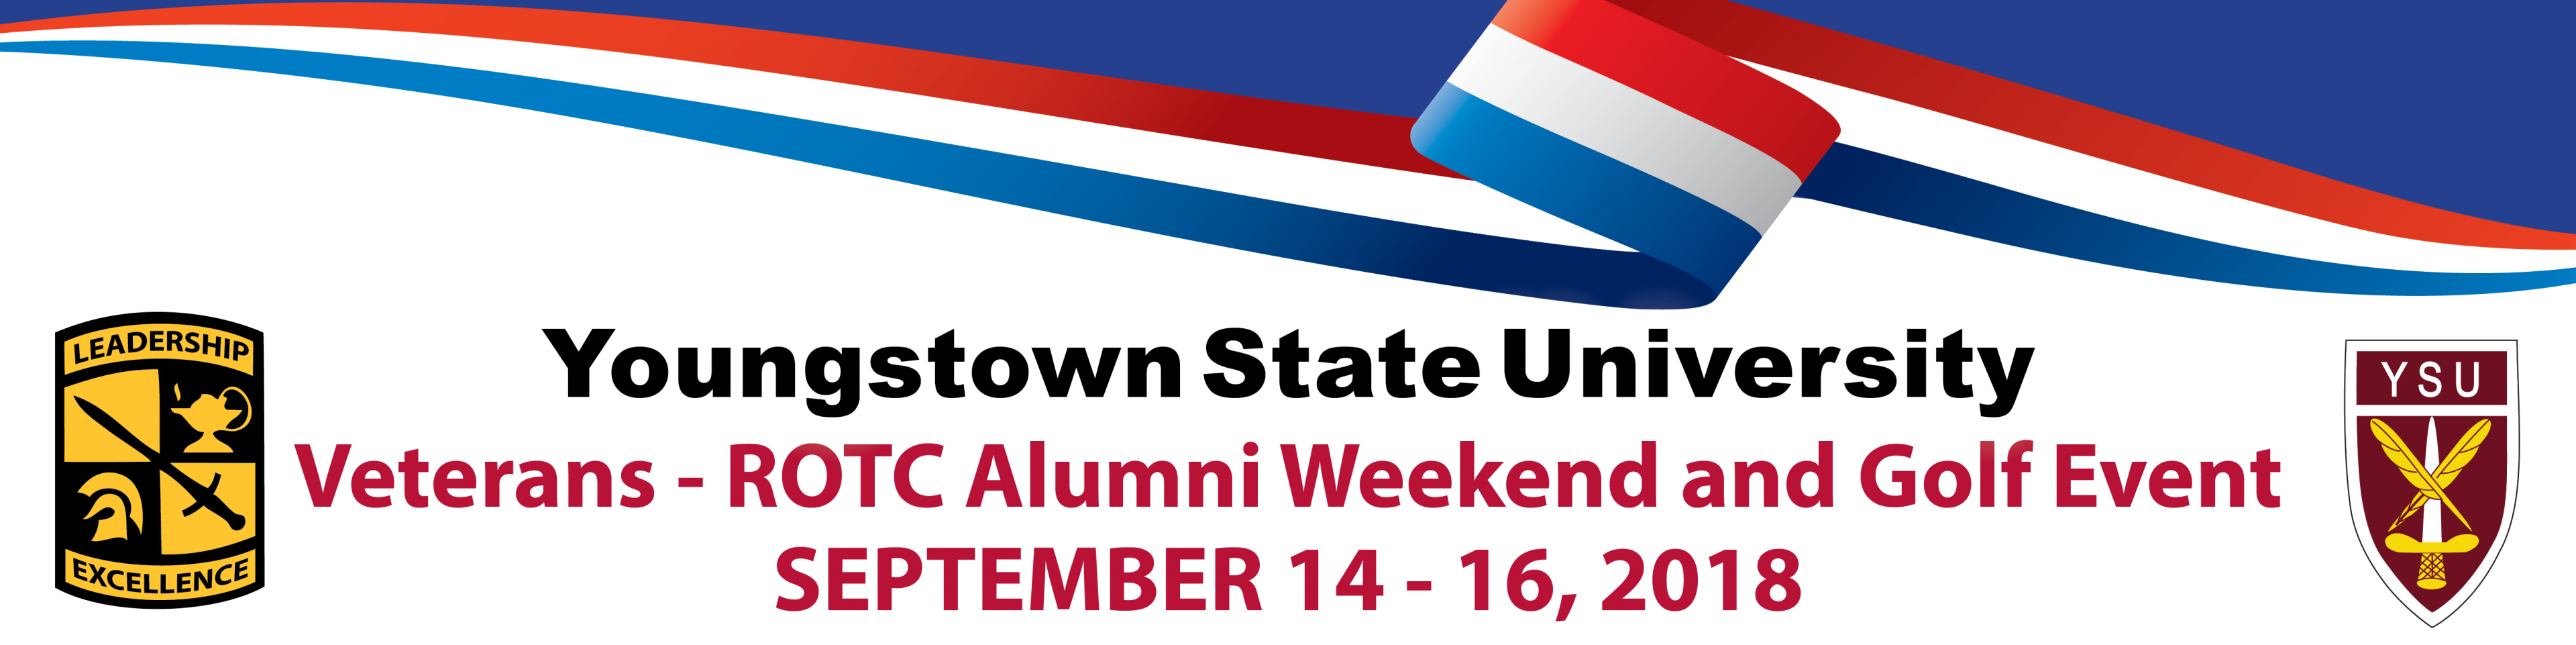 Youngstown State University Veterans - ROTC Alumni Weekend and Golf Outing Septmeber 14-16, 2018